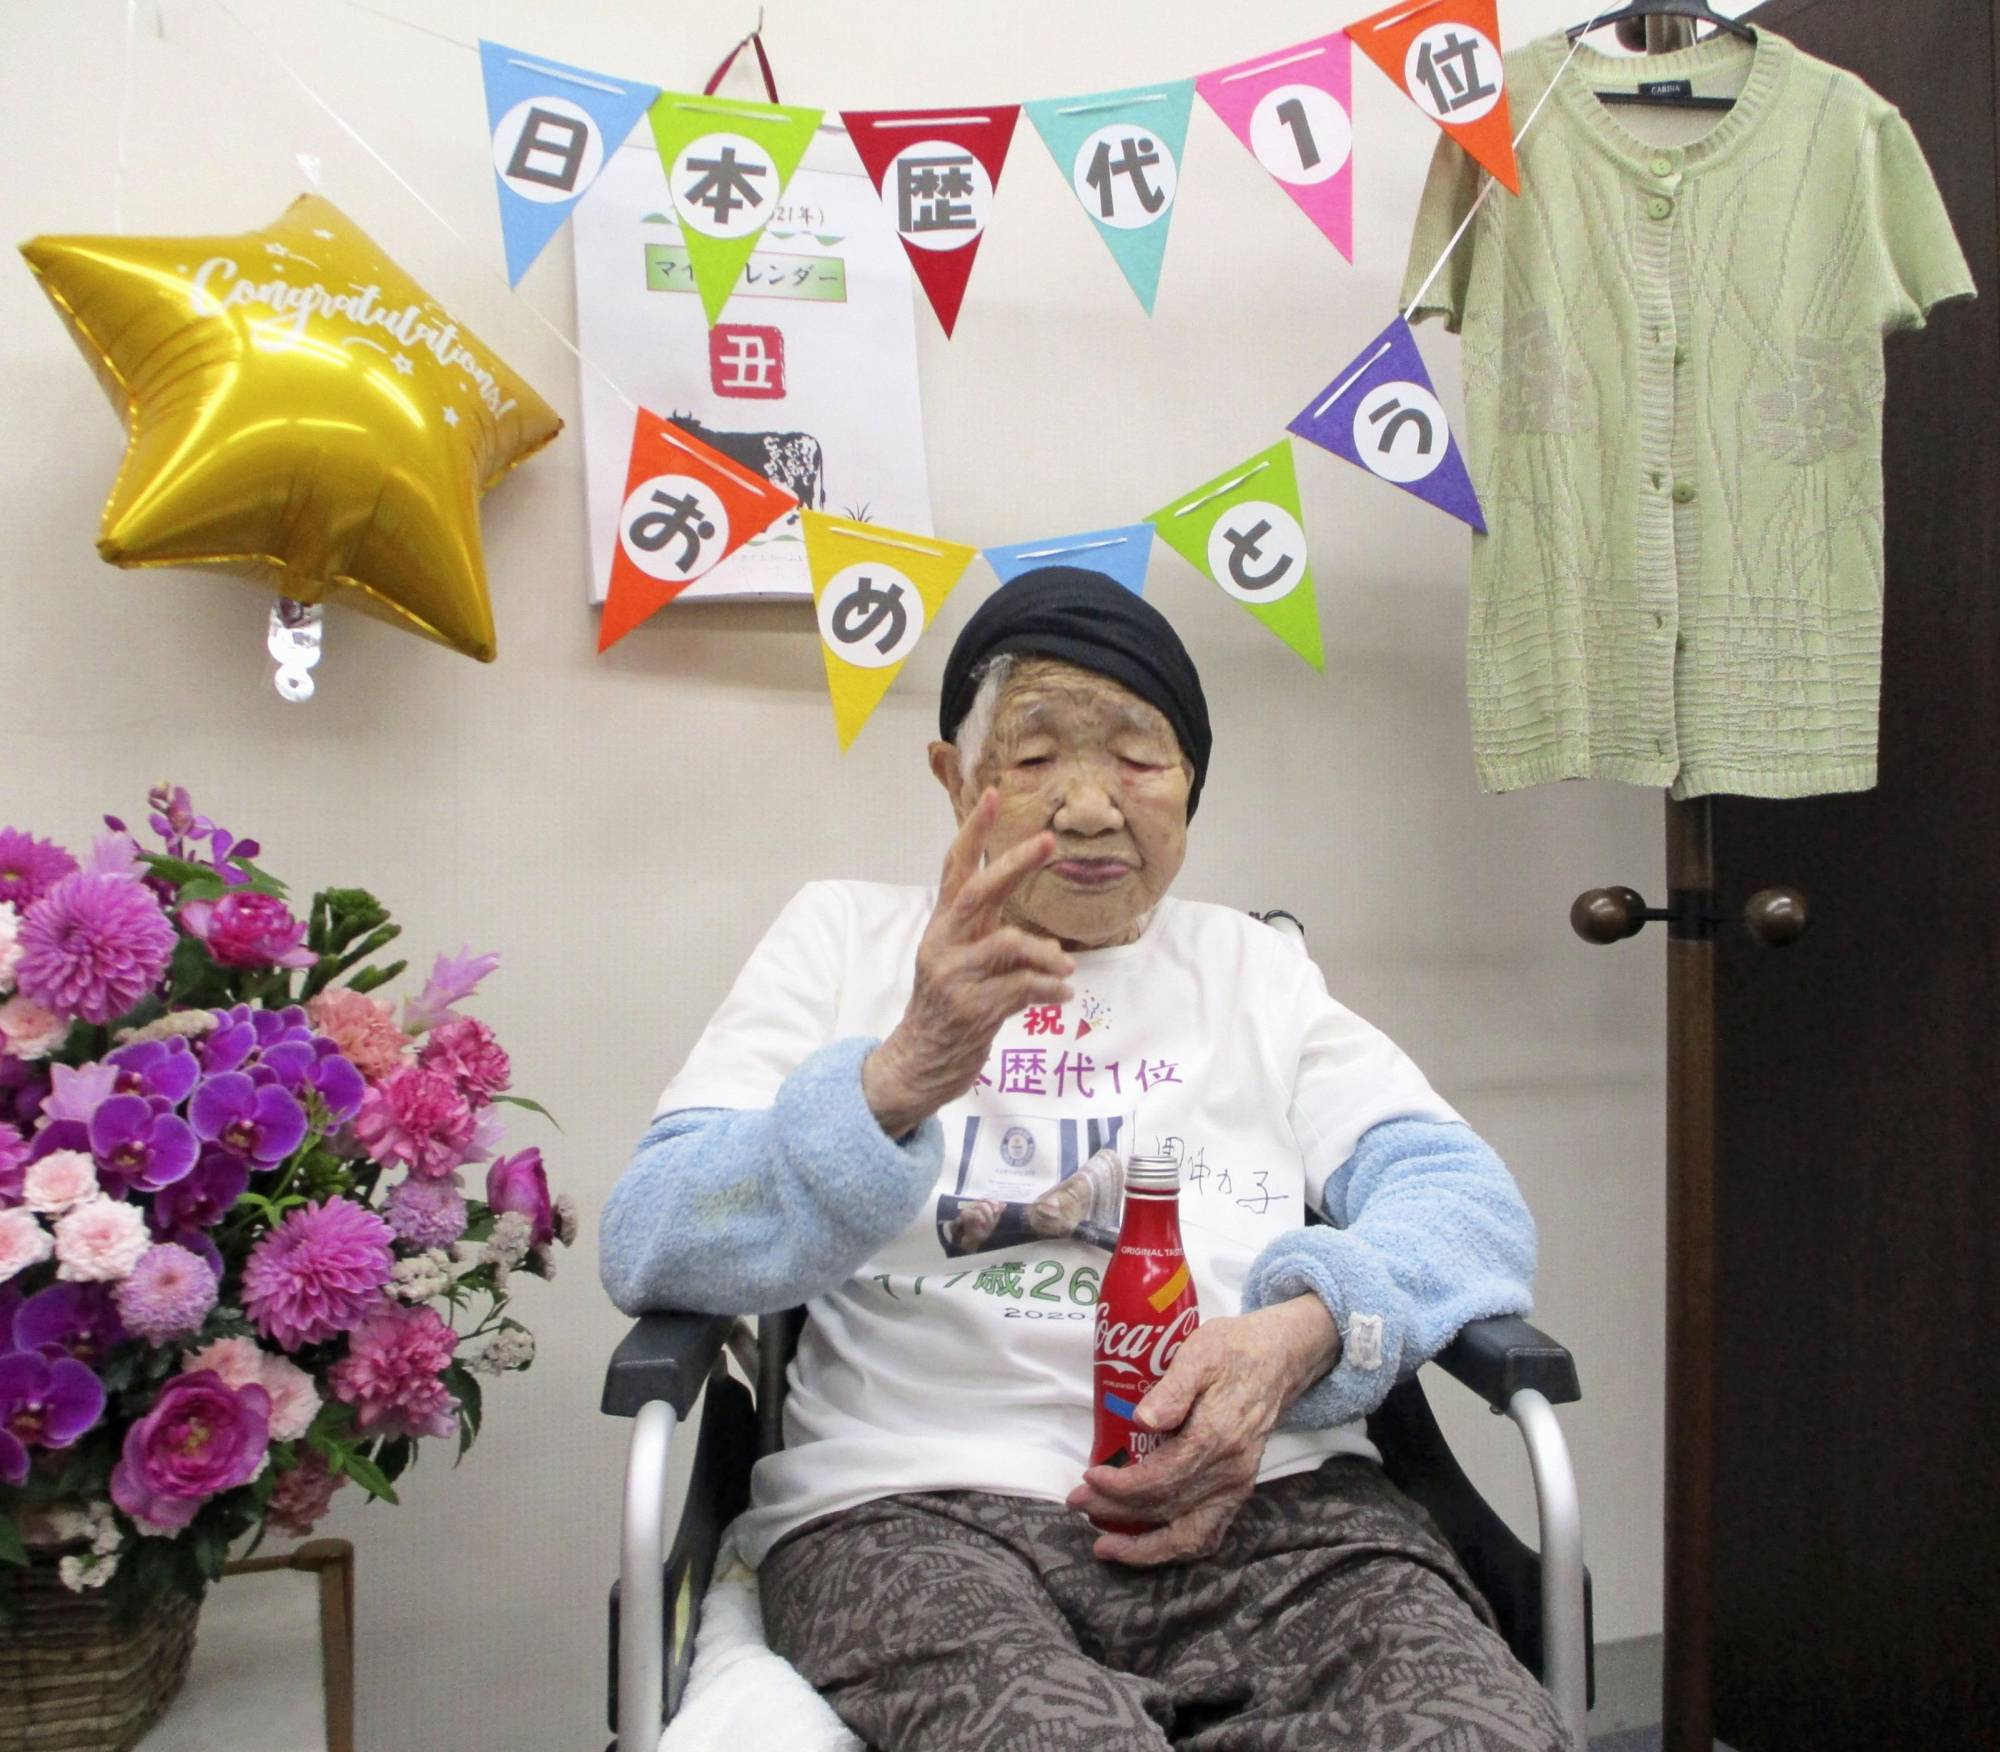 Kane Tanaka poses for a photo after setting an all-time Japanese age record in September last year at 117 years and 261 days. Tanaka celebrated her 118th birthday in the city of Fukuoka on Saturday. | TANAKA FAMILY / VIA KYODO